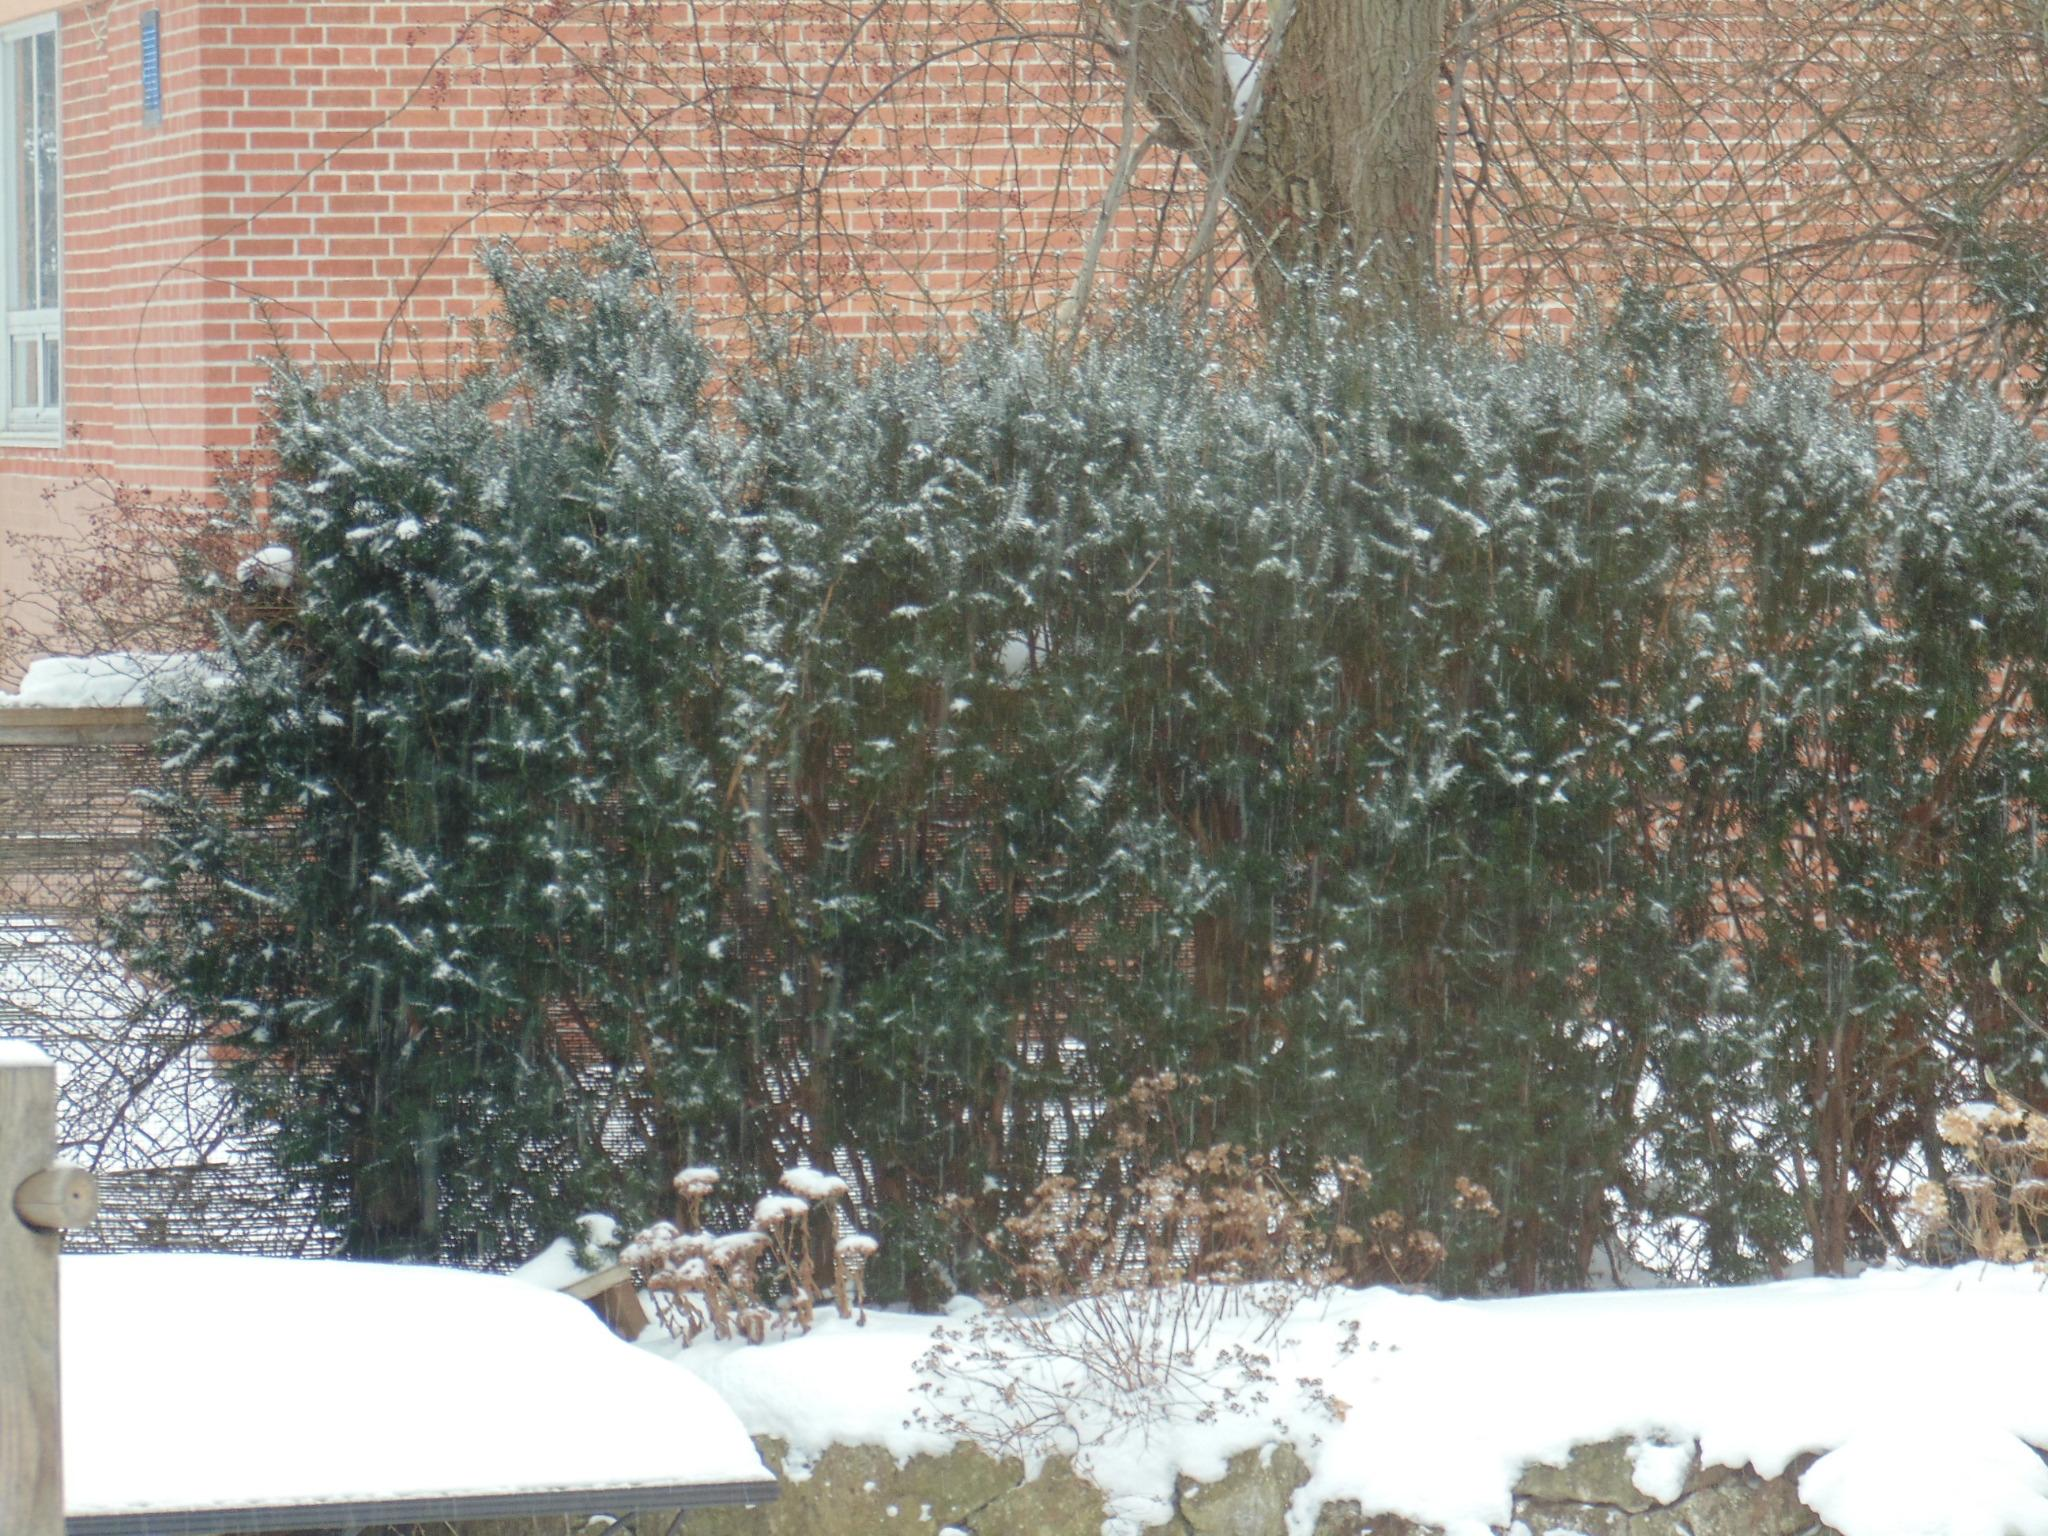 snowy yew tree hedge